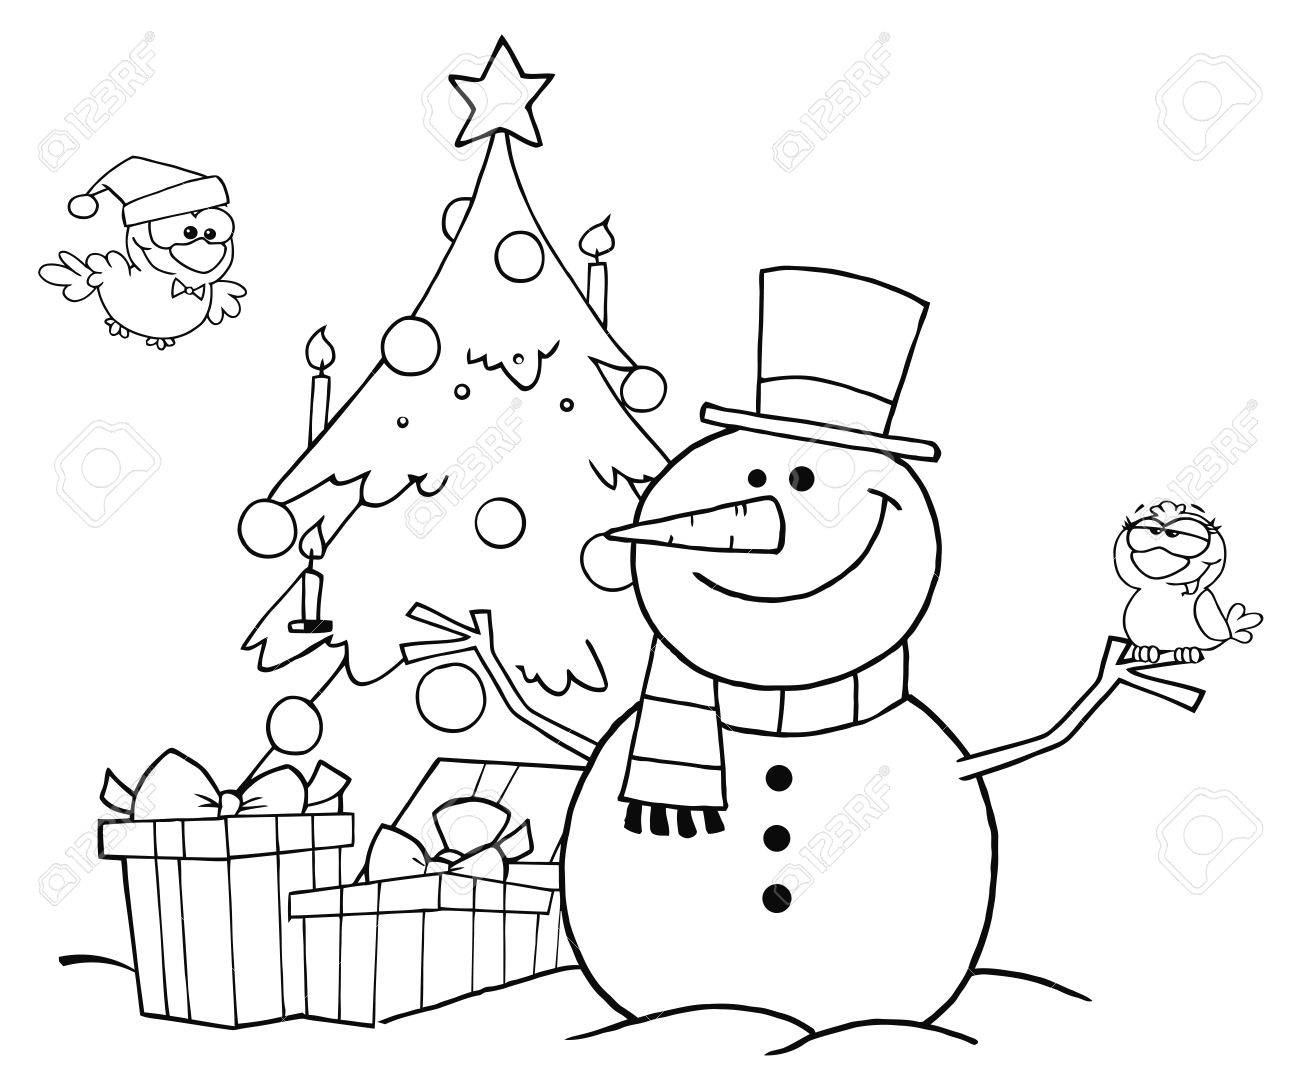 Outlined Friendly Snowman With A Cute Birds And Christmas Tree Royalty Free Cliparts Vectors And Stock Illustration Image 8284512